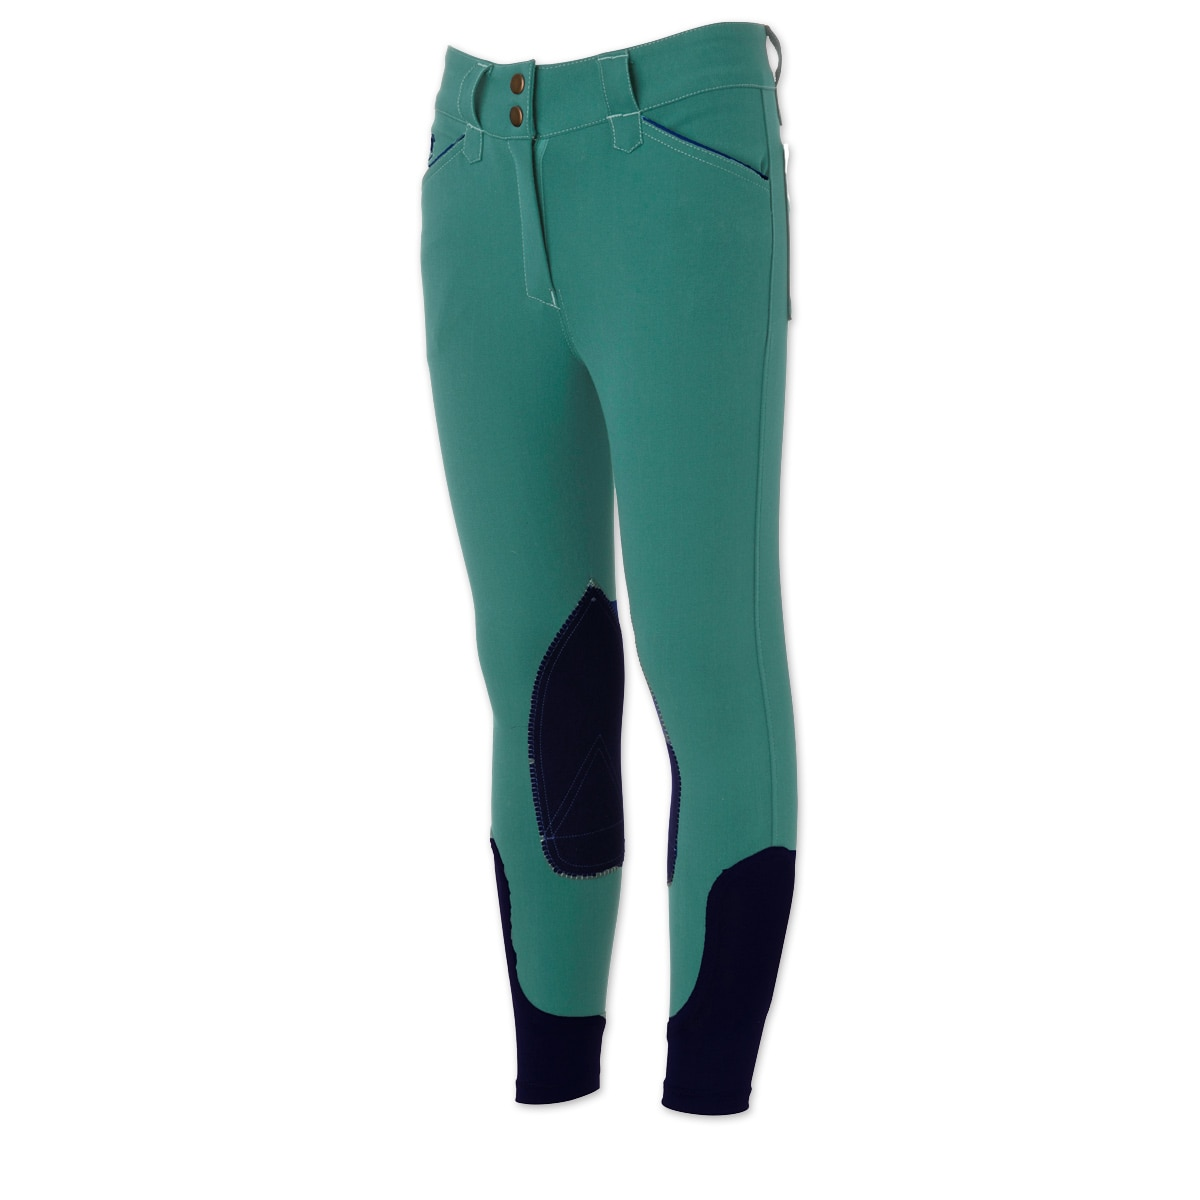 Piper Breeches by SmartPak - Girls Knee Patch - Clearance!